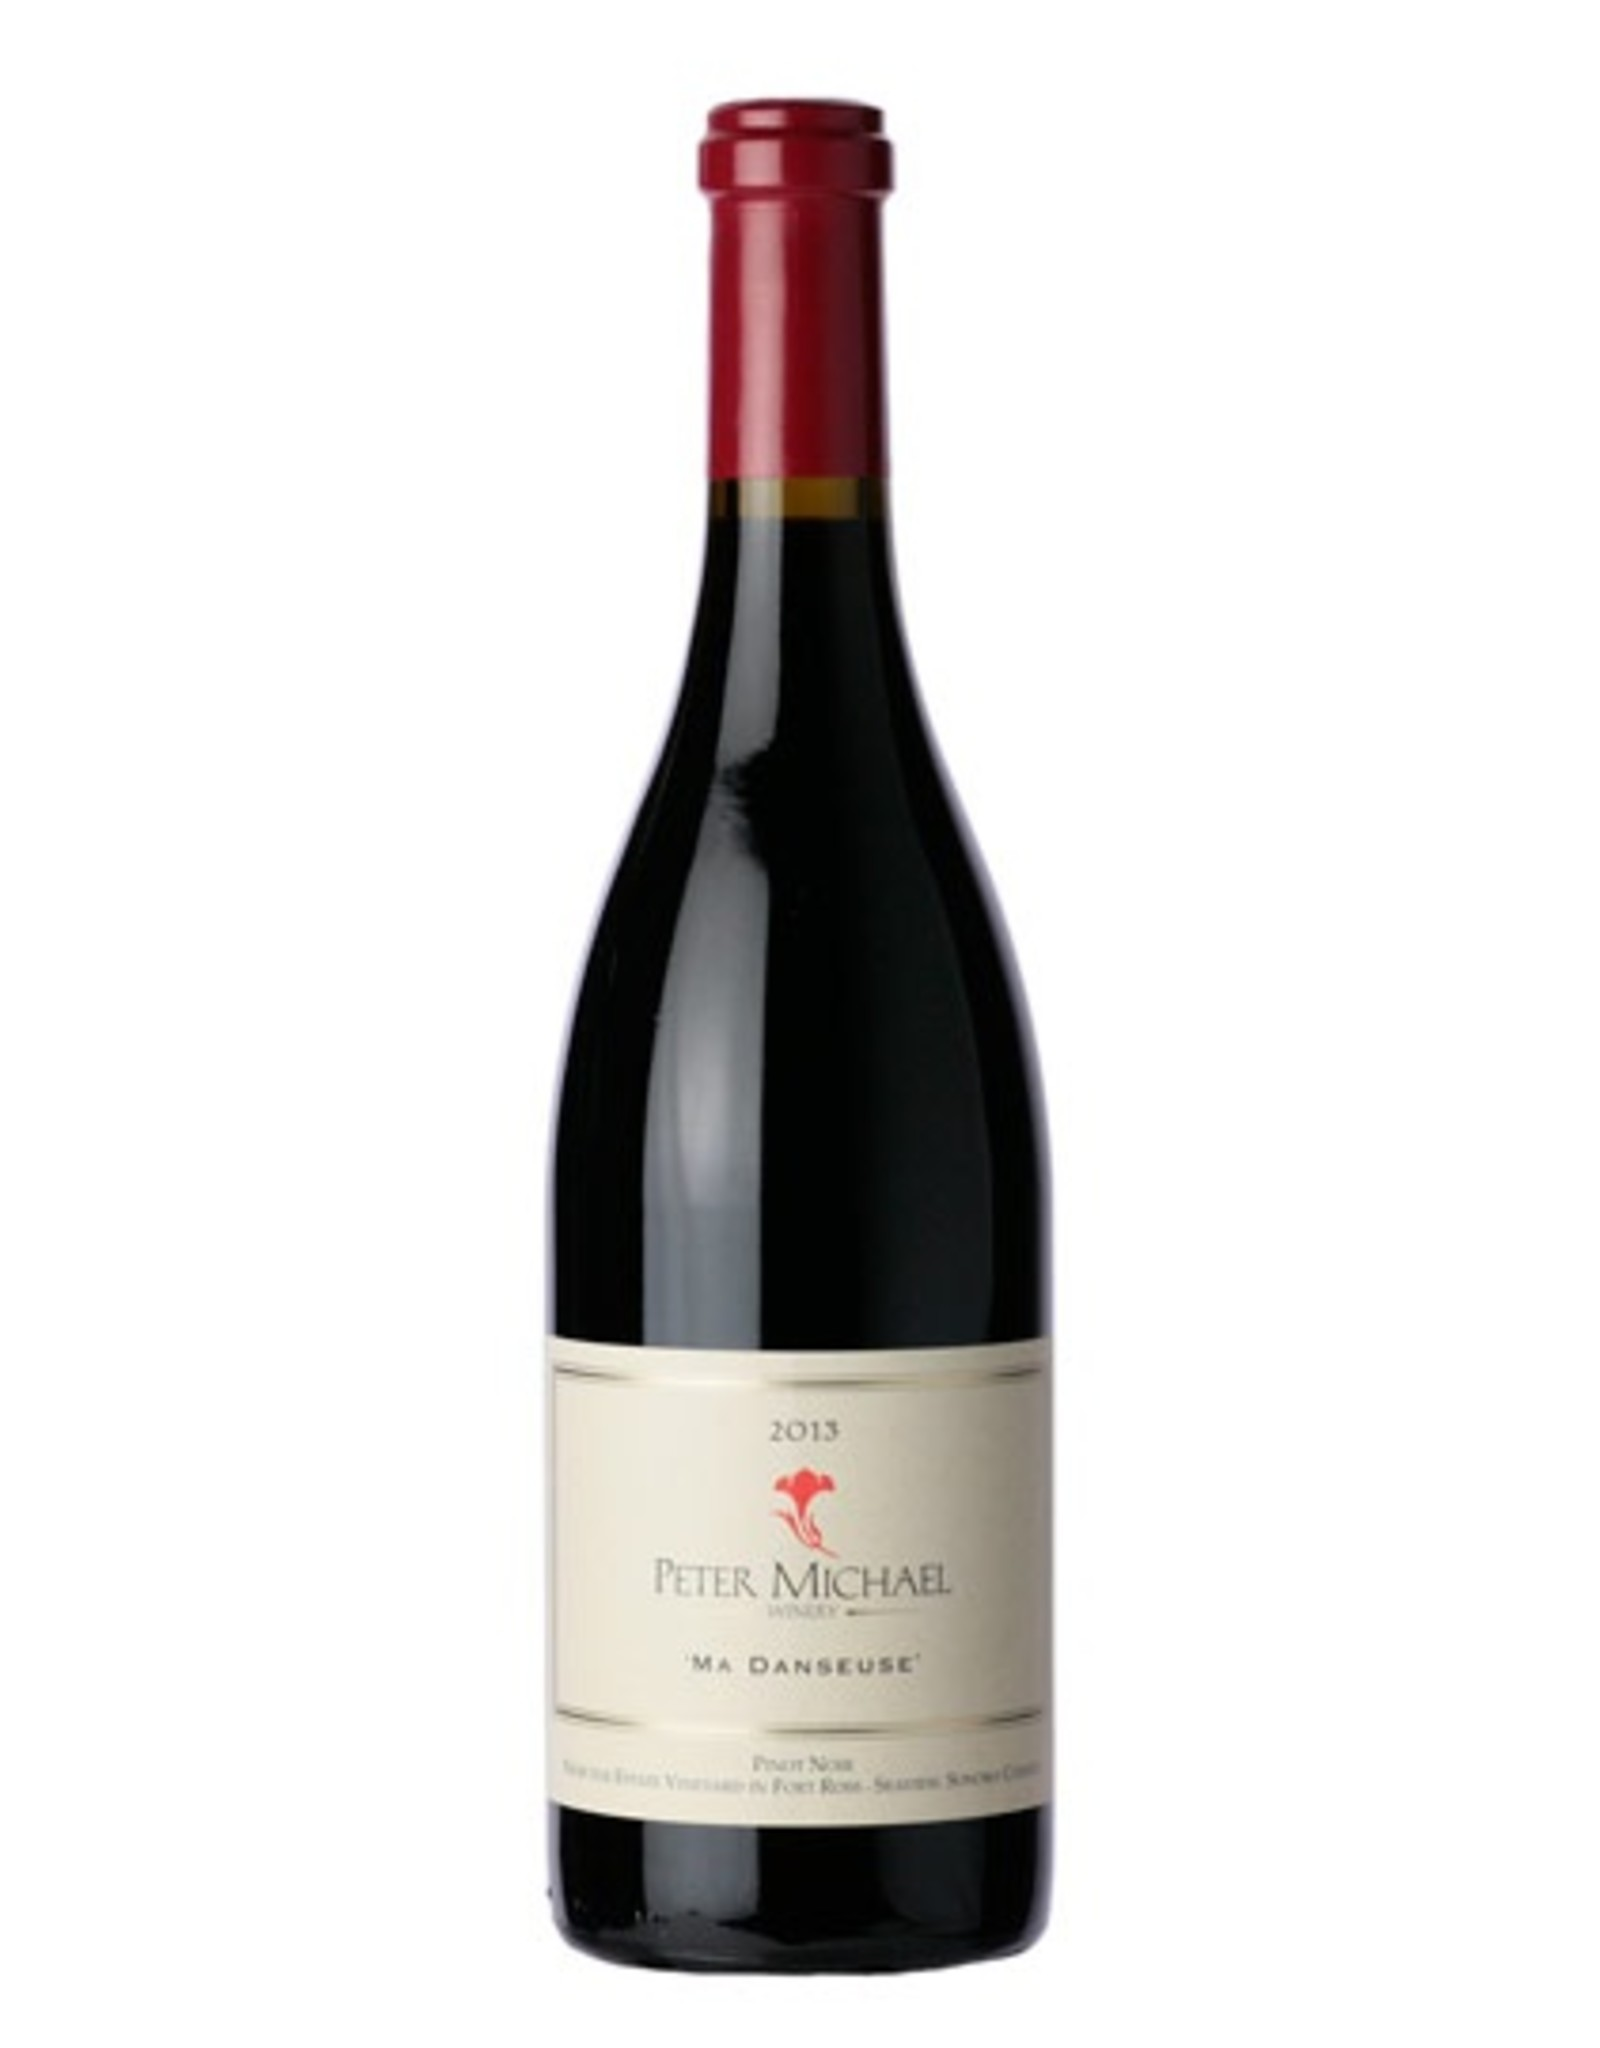 Red Wine 2013, Peter Michael Ma Danseuse, Pinot Noir, Seaview, Sonoma County, California,14.4% Alc, CT92, JS97